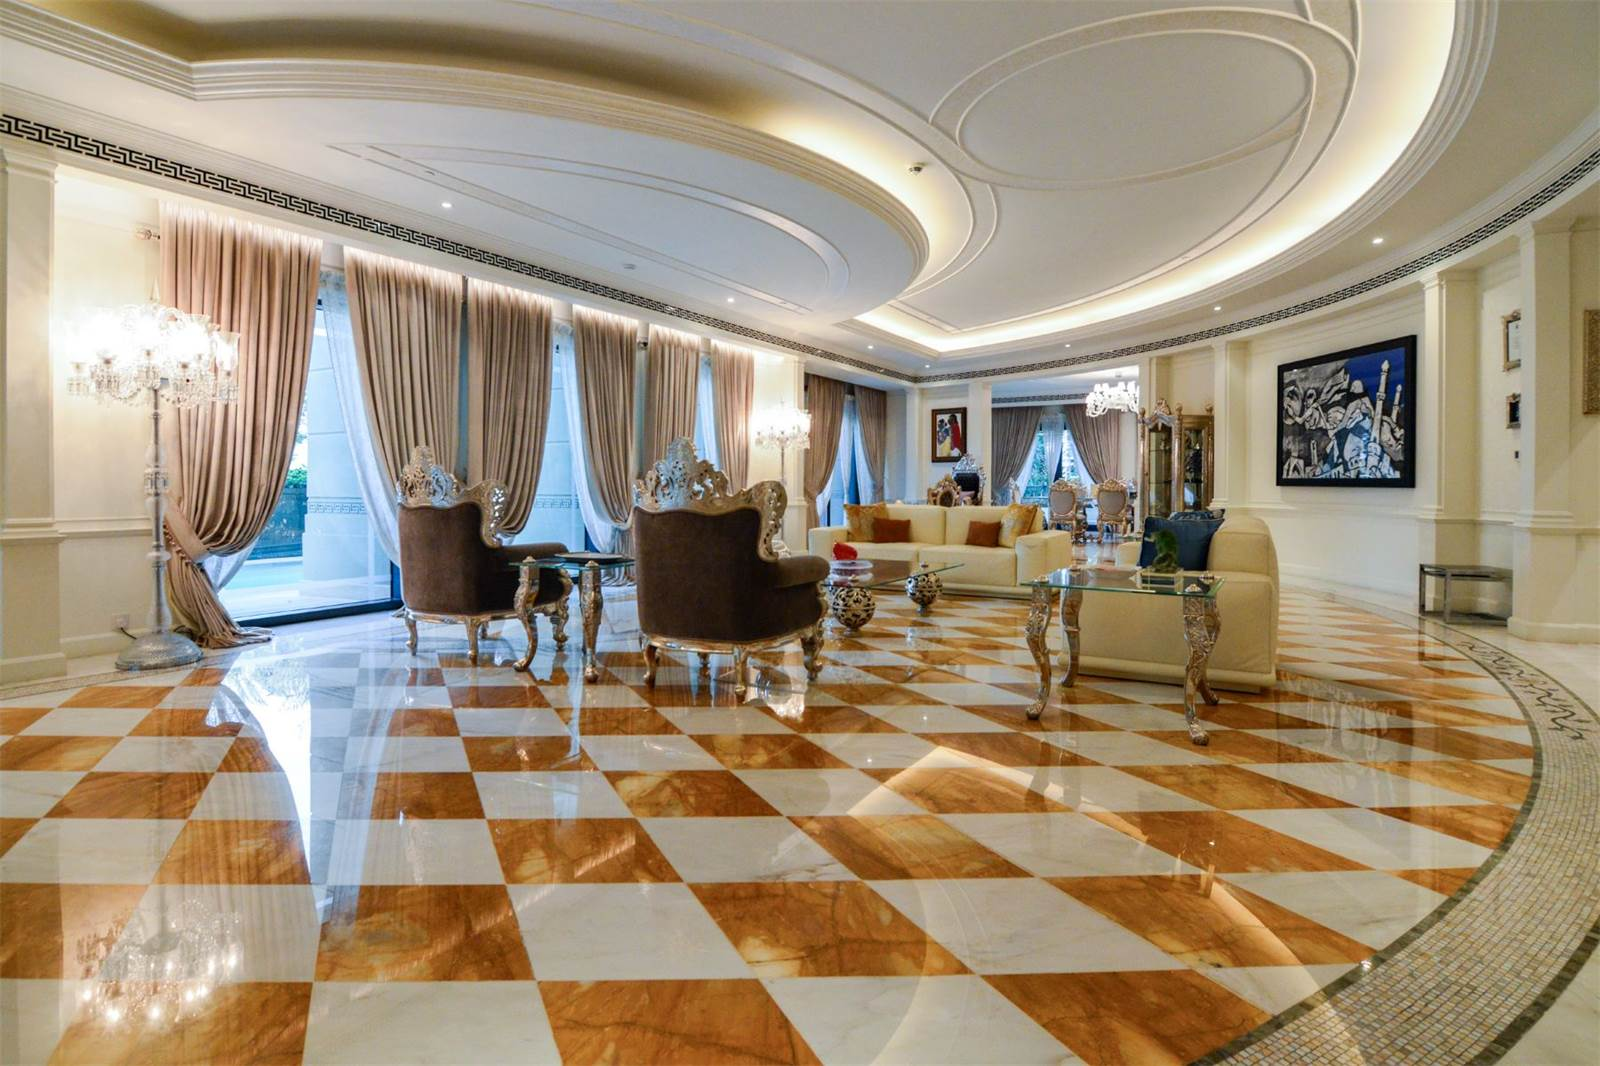 kitchen sofas oxblood red 3 seater chesterfield sofa palazzo versace opulent waterfront penthouse in dubai ...